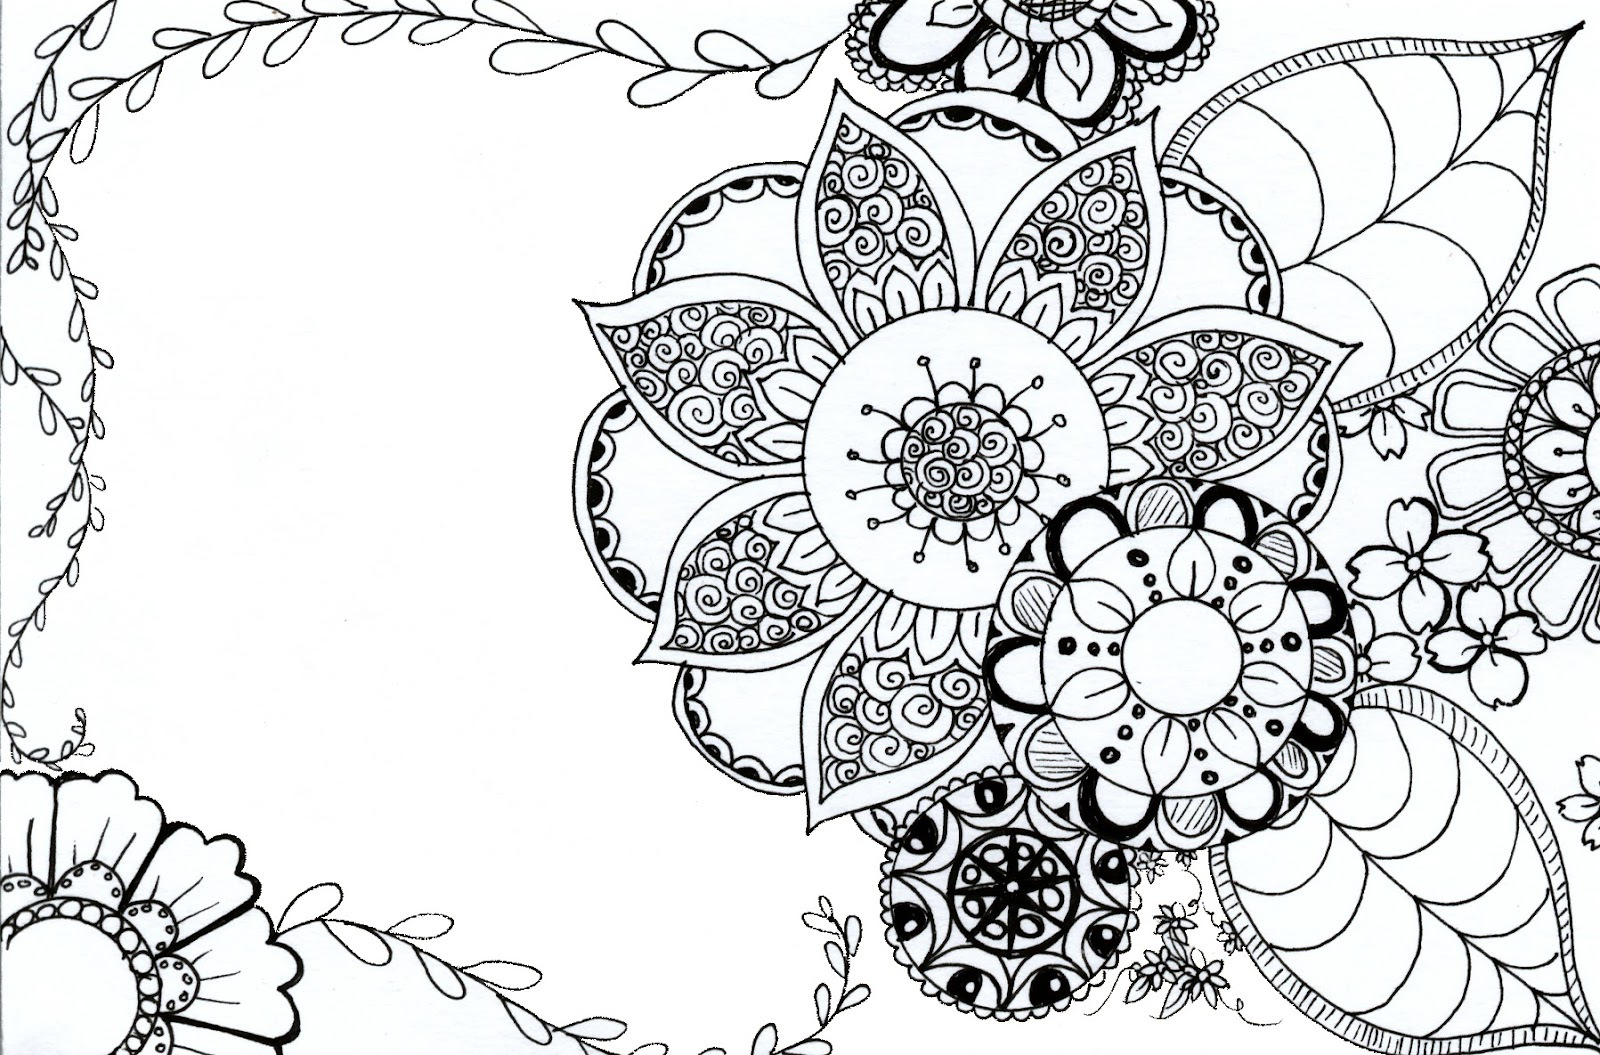 Tarkheena Crafts: Flower Coloring Pages